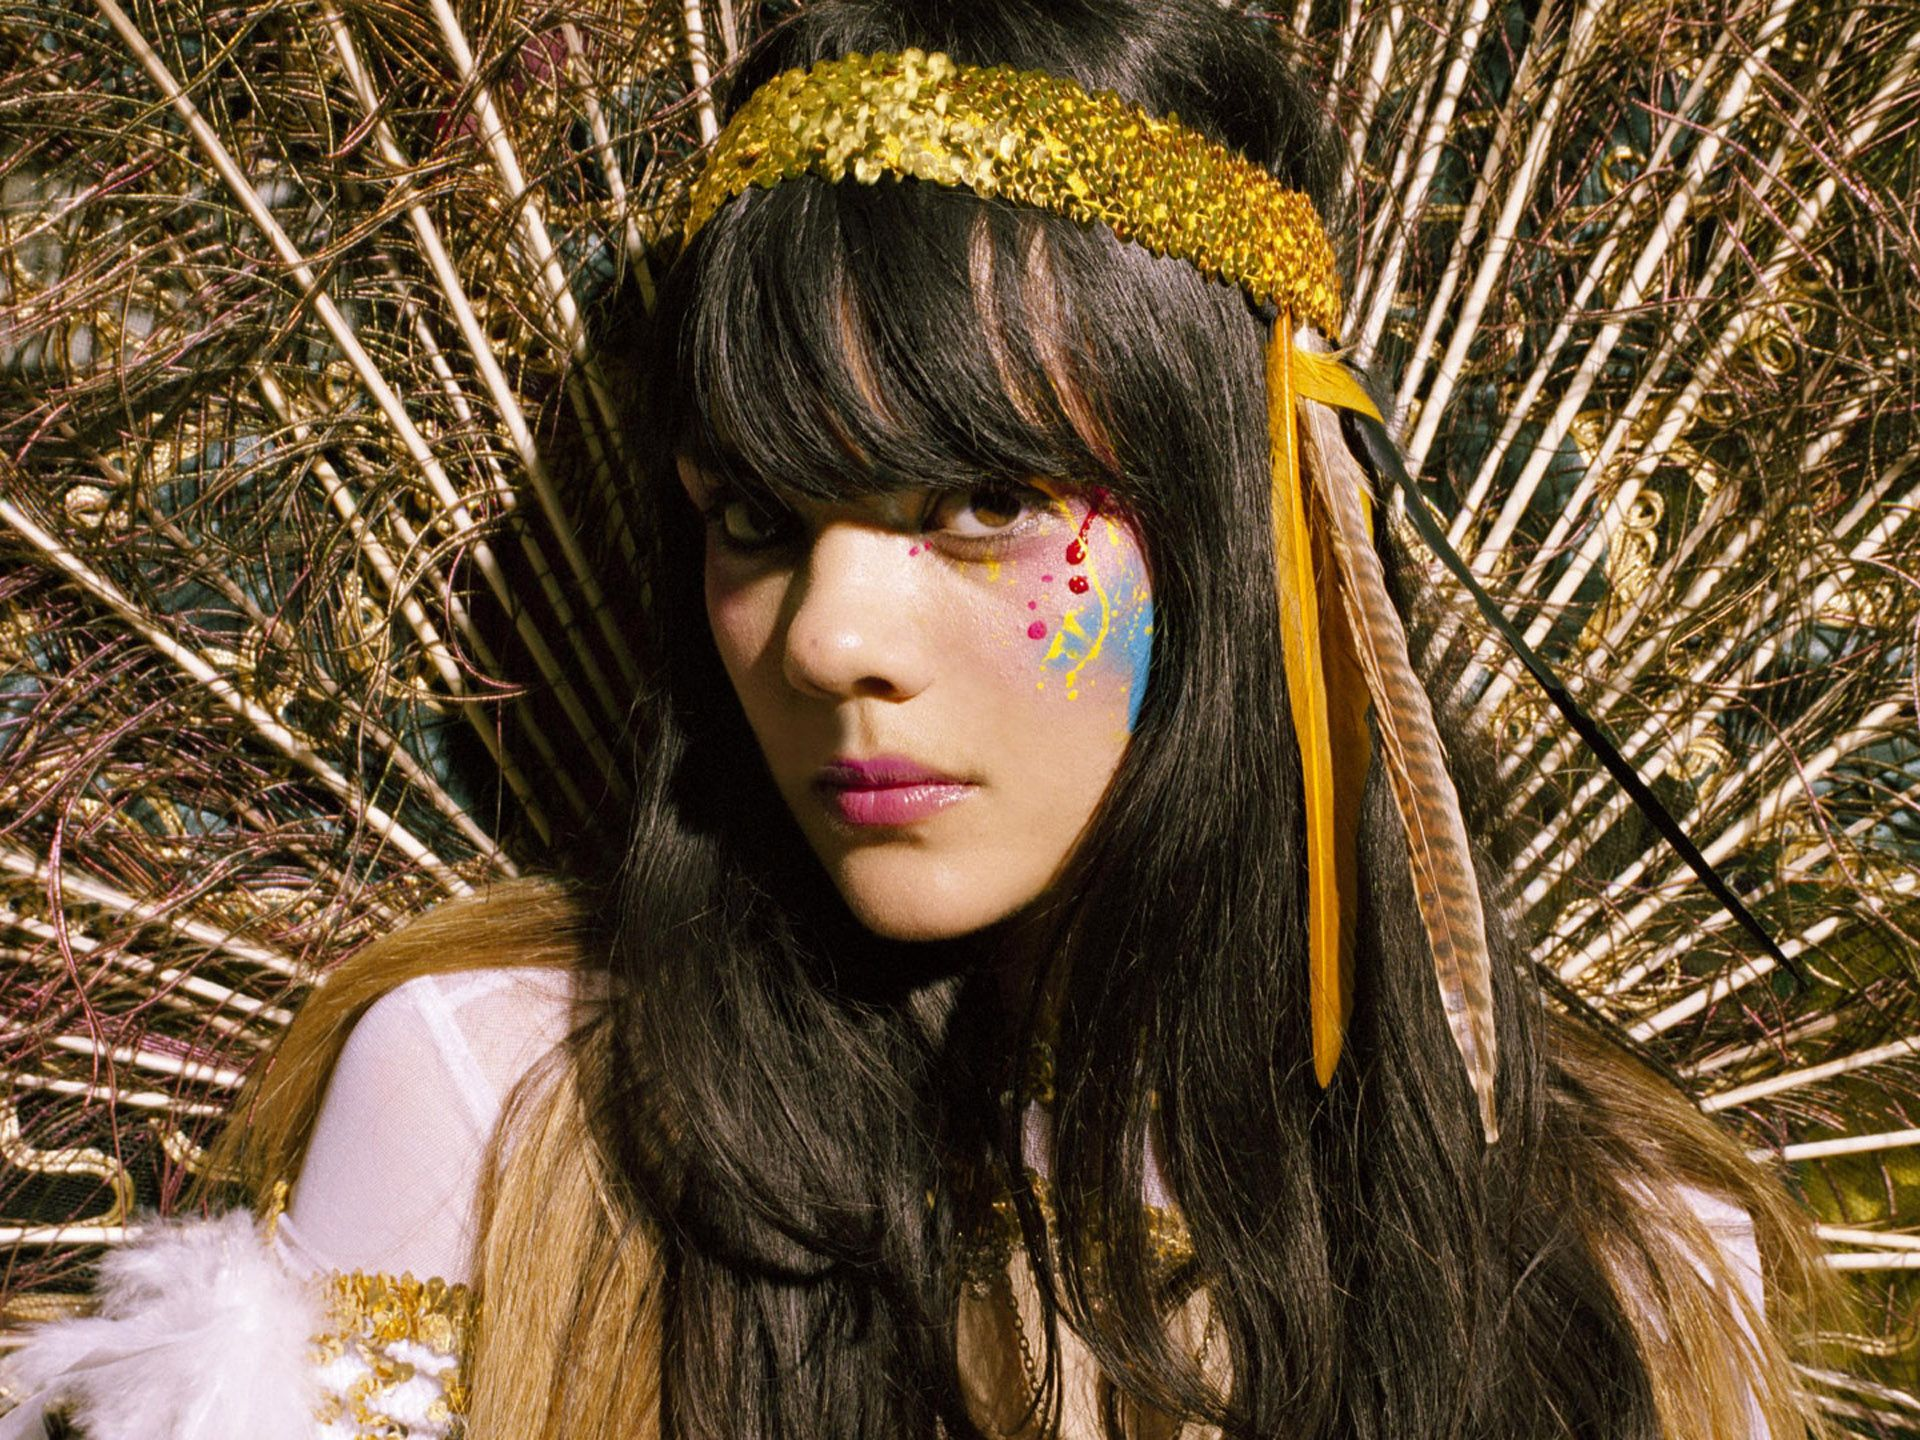 Sónar 2013: Bat For Lashes (The Haunted Man)